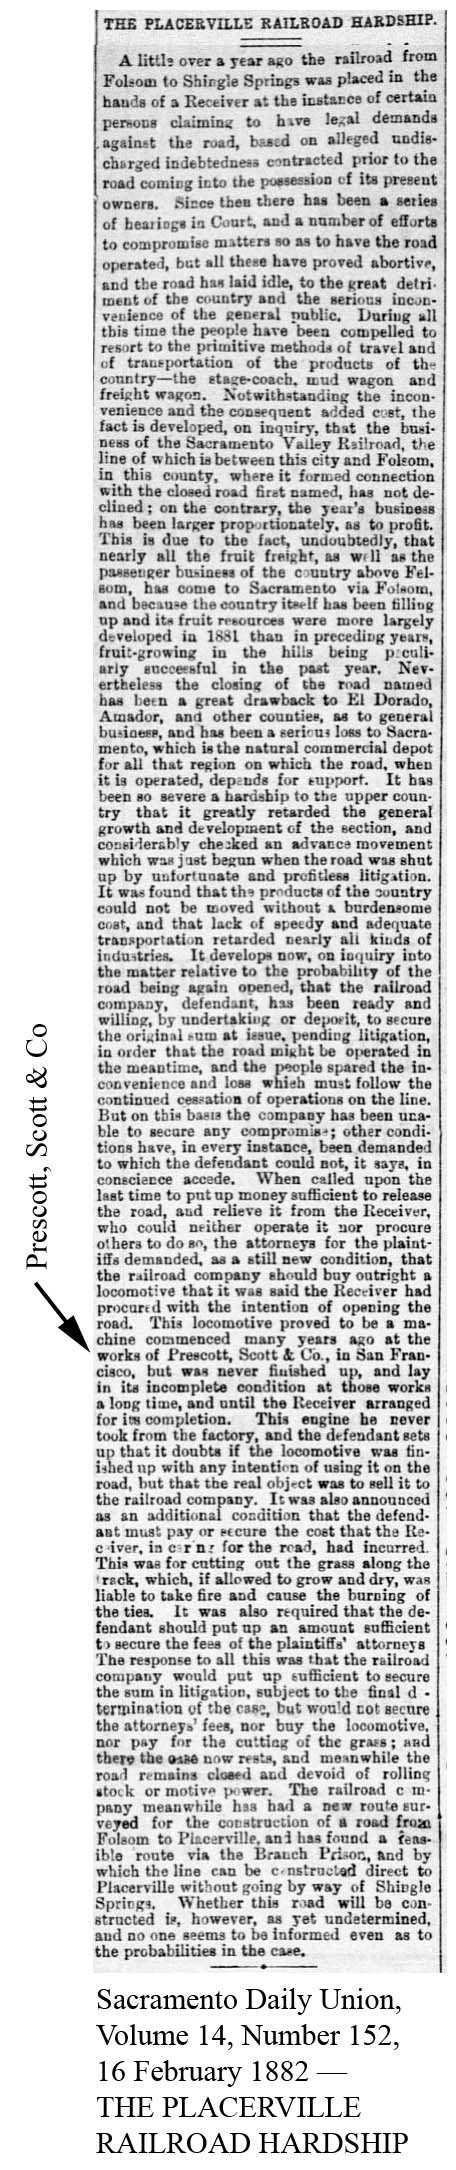 1882-02-16 Sacramento Union, Vol 14, No 152, 16 Feb 1882 - THE PLACERVILLE RAILROAD HARDSHIP.